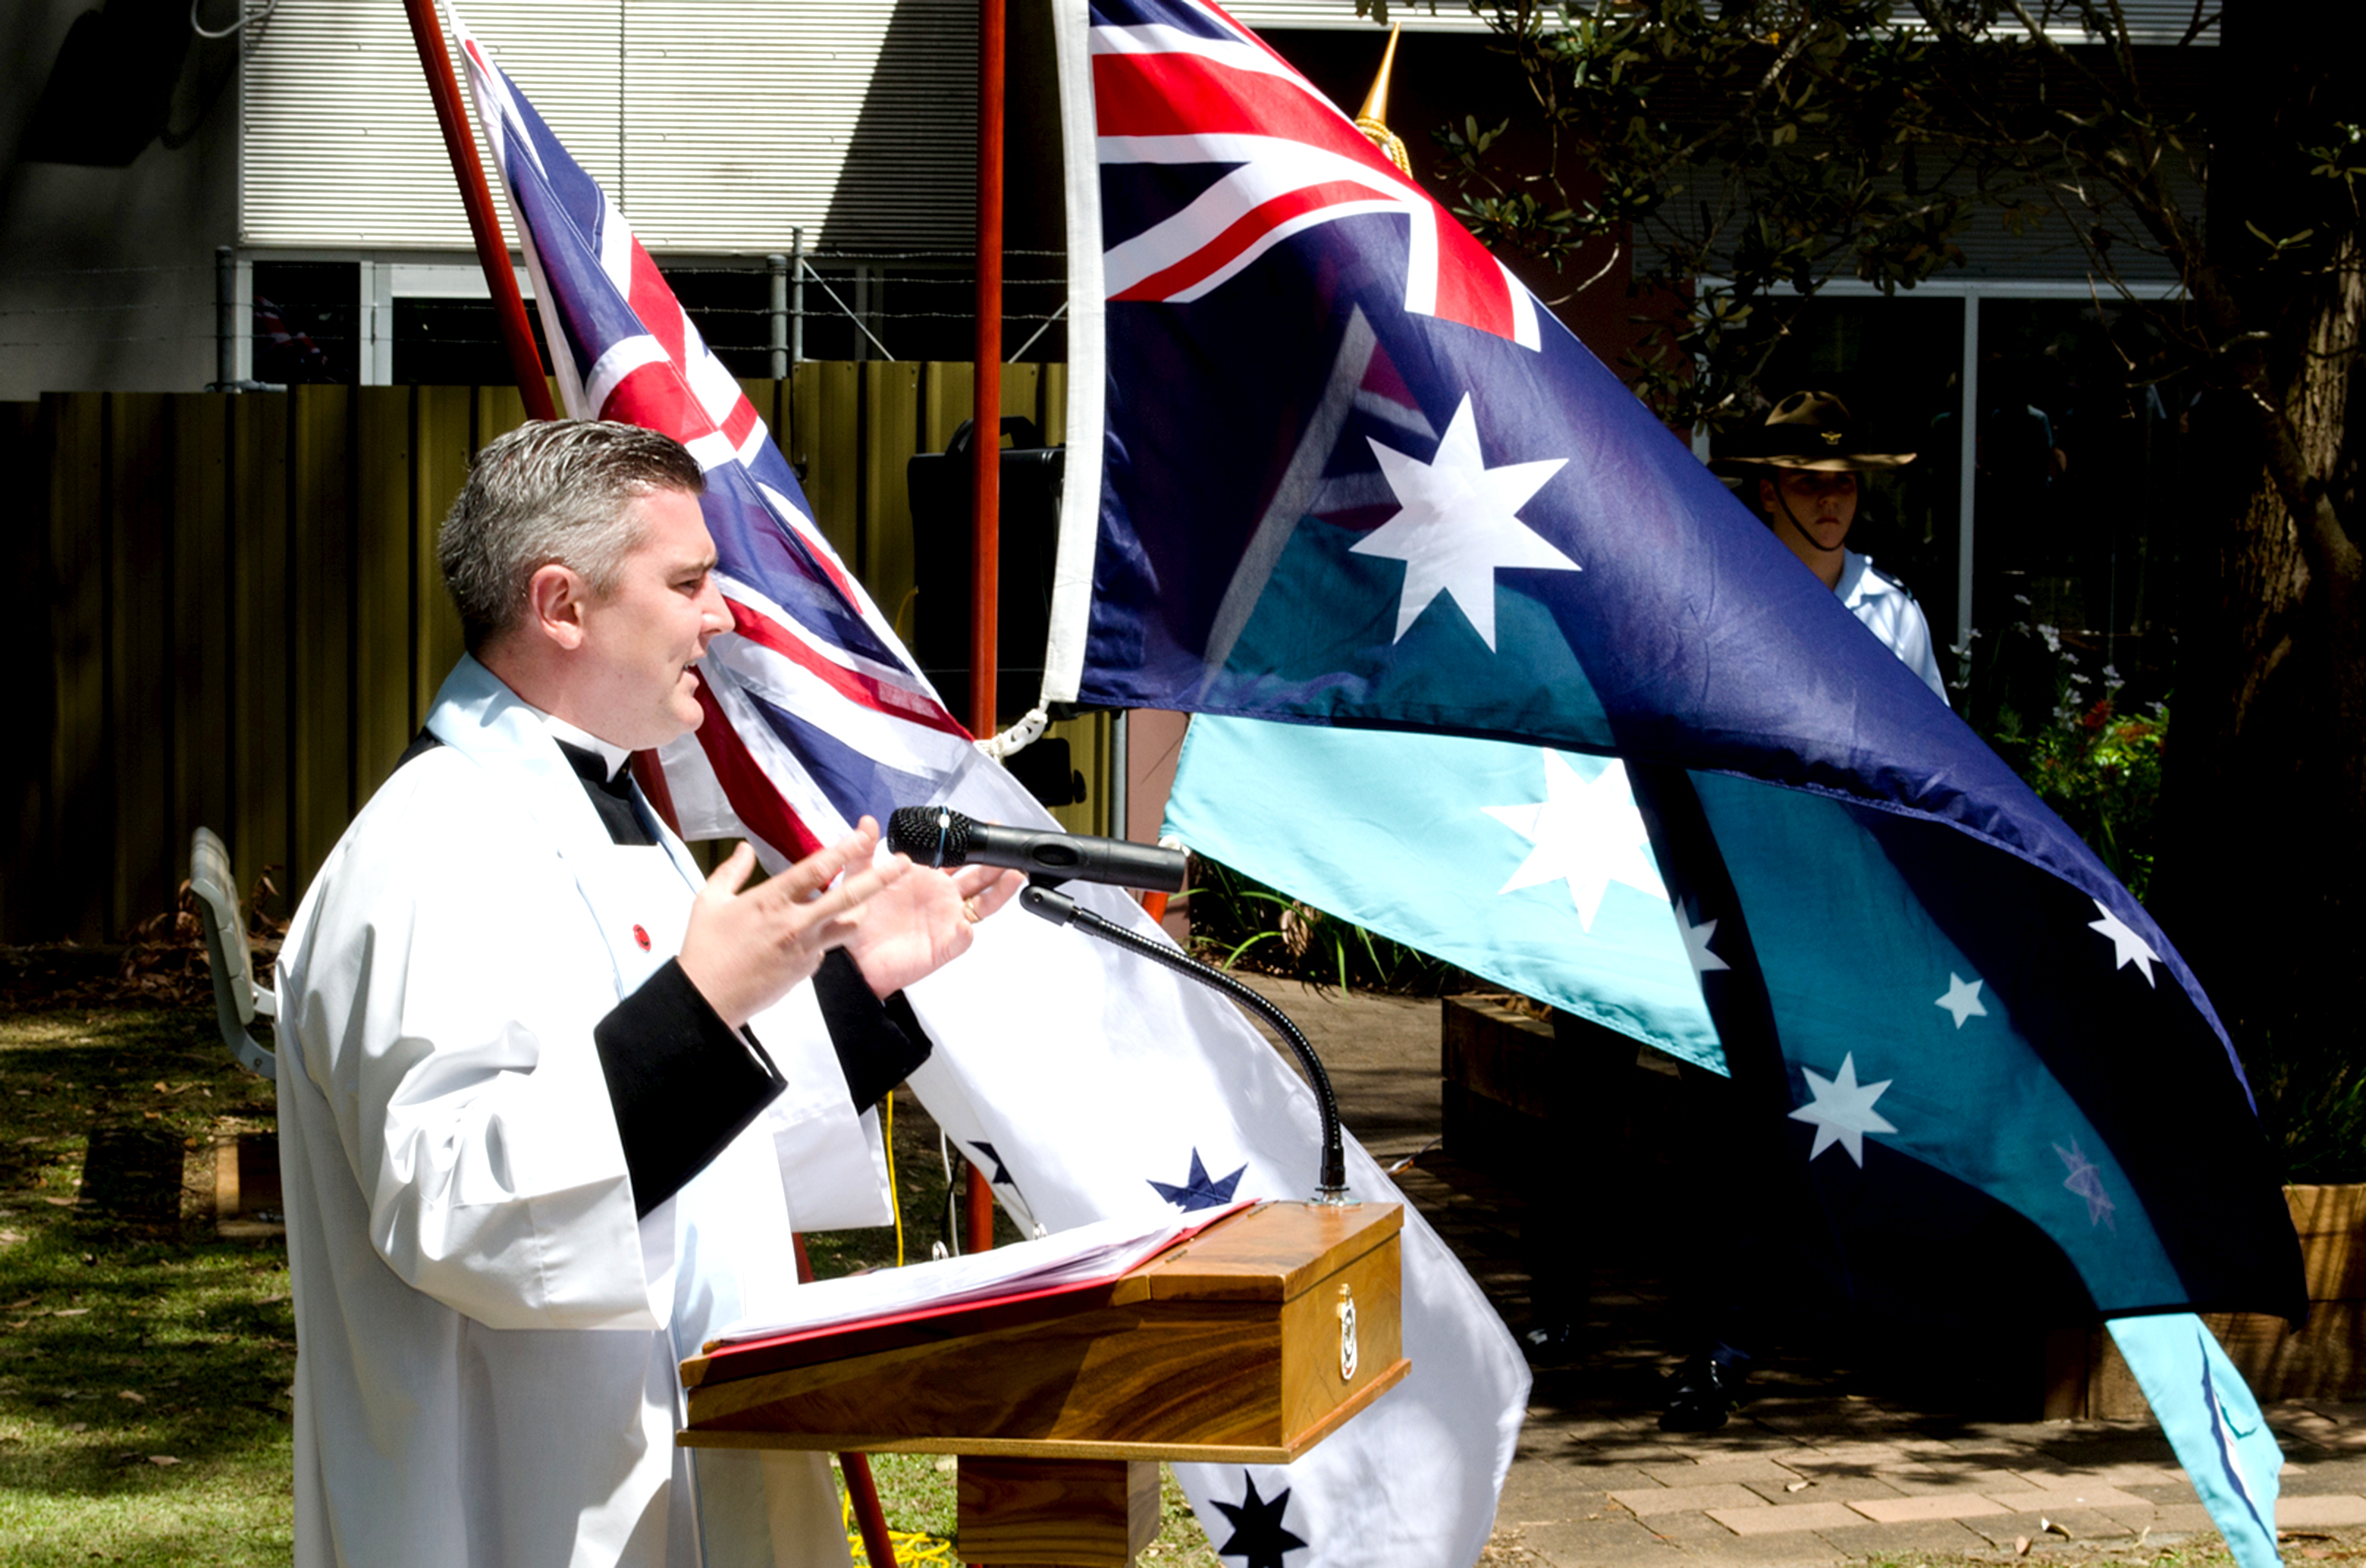 Father Chris Yates offering the blessing and reflection at last year's service for Remembrance Day.